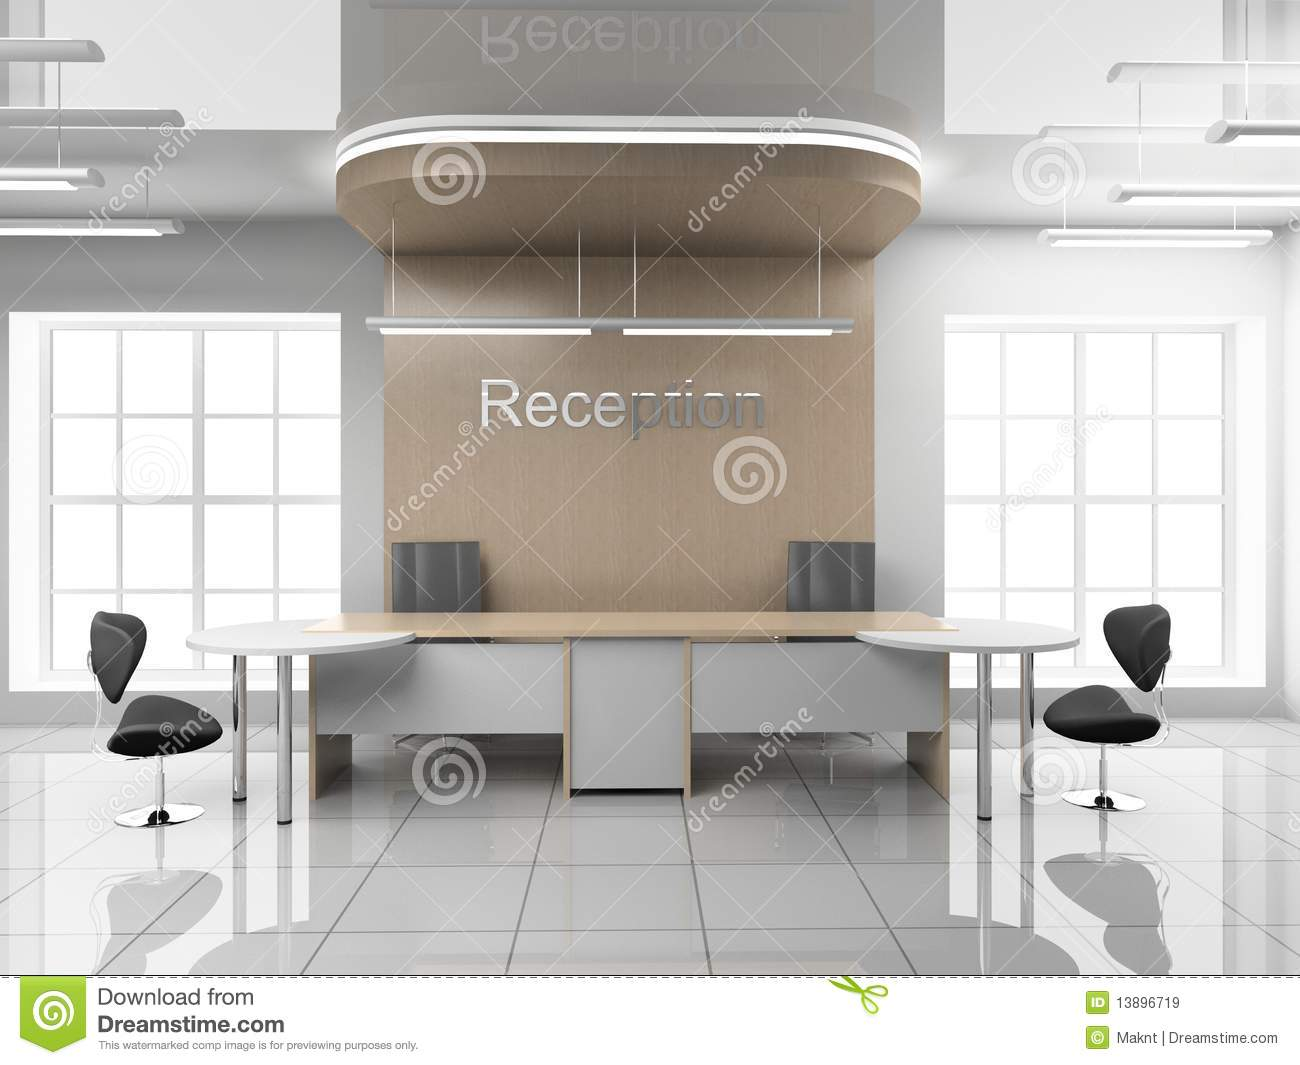 Reception at office